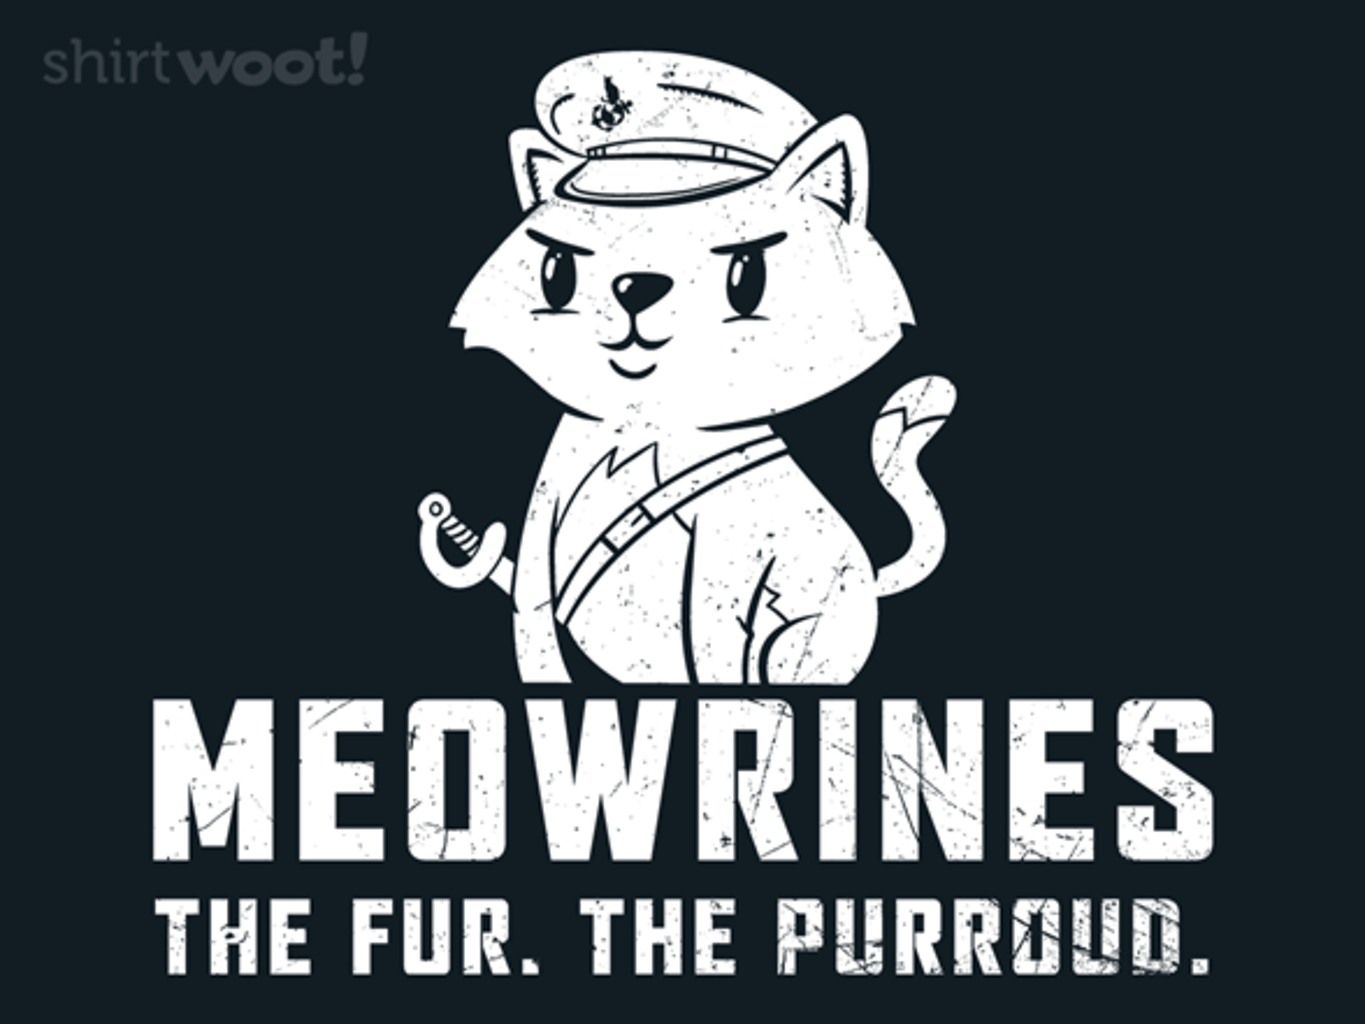 Woot!: The Meowrines